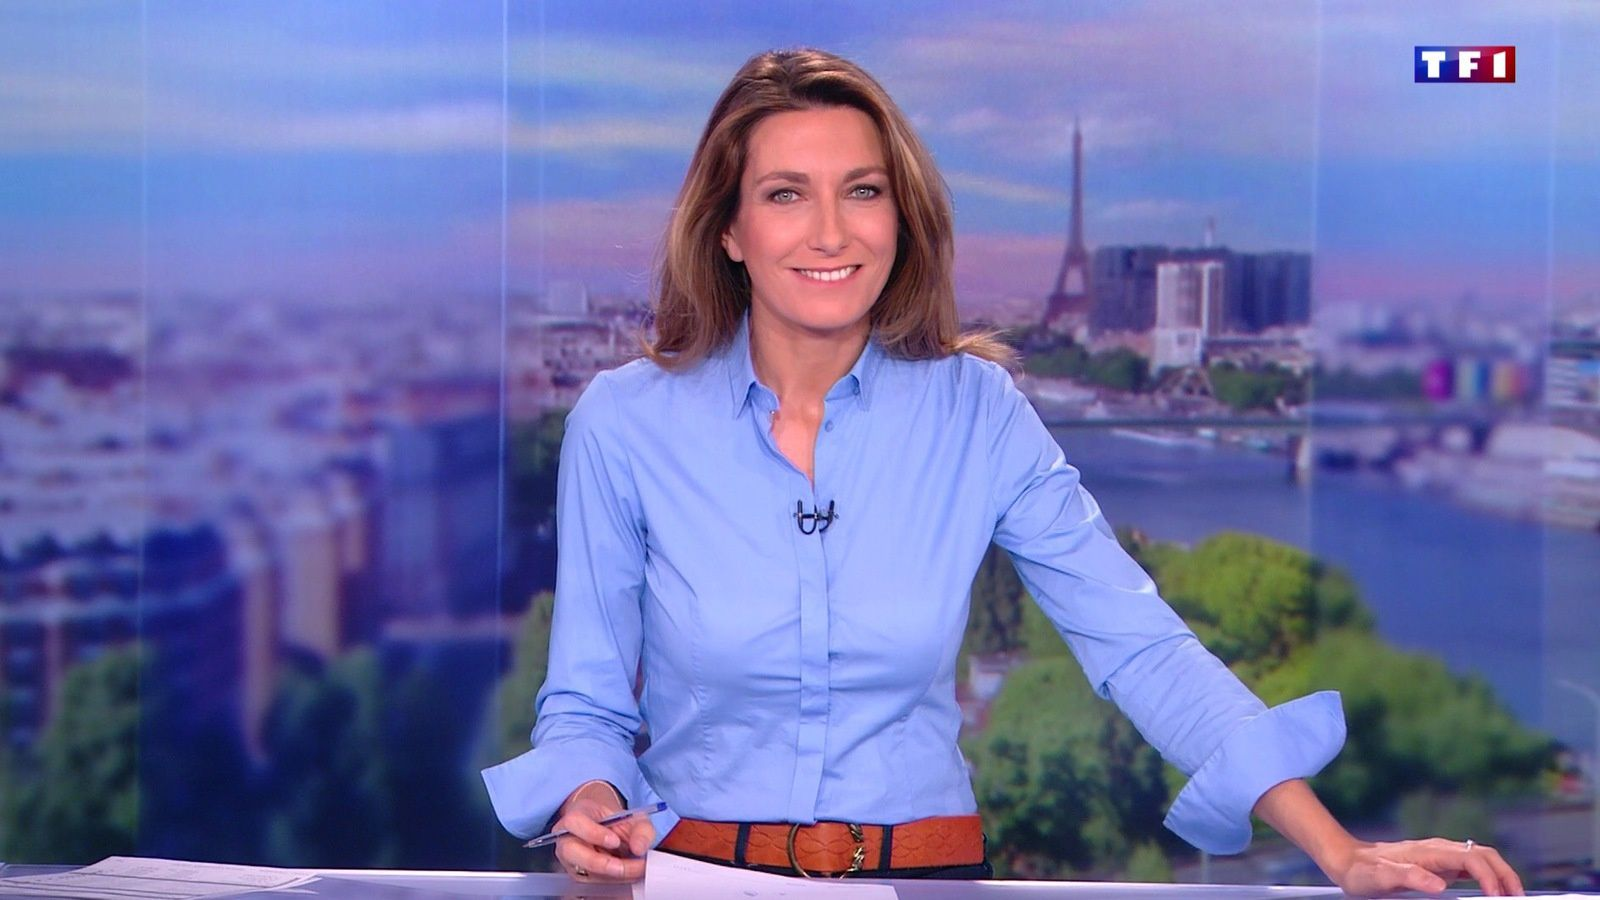 � ANNE-CLAIRE COUDRAY @ACCoudray @TF1 @TF1LeJT pour LE 13H WEEK-END #vuesalatele